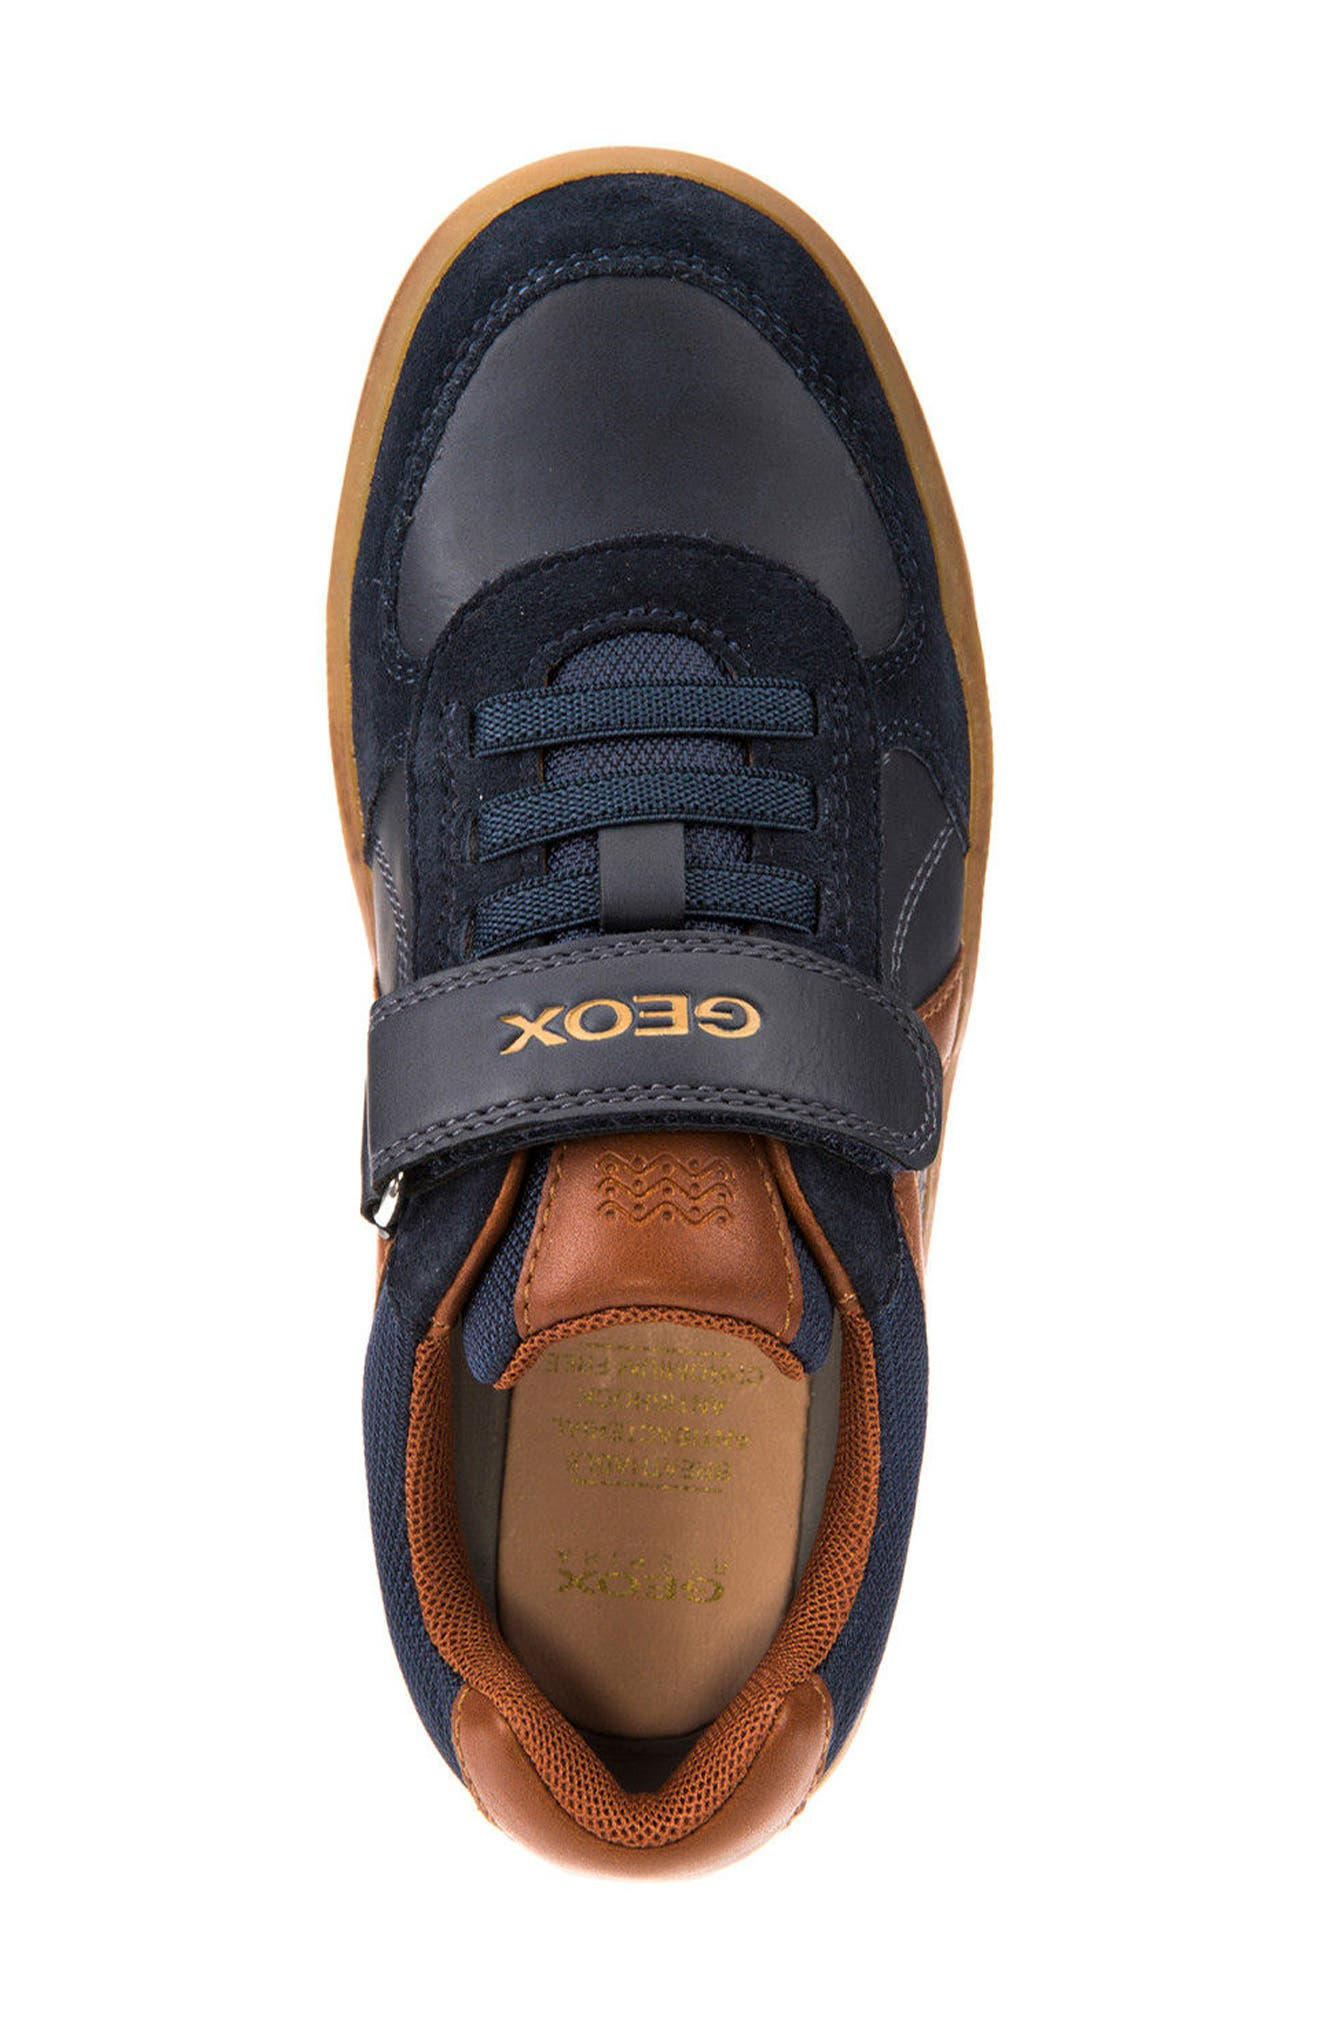 Arzach Low Top Sneaker,                             Alternate thumbnail 5, color,                             Navy/ Brown